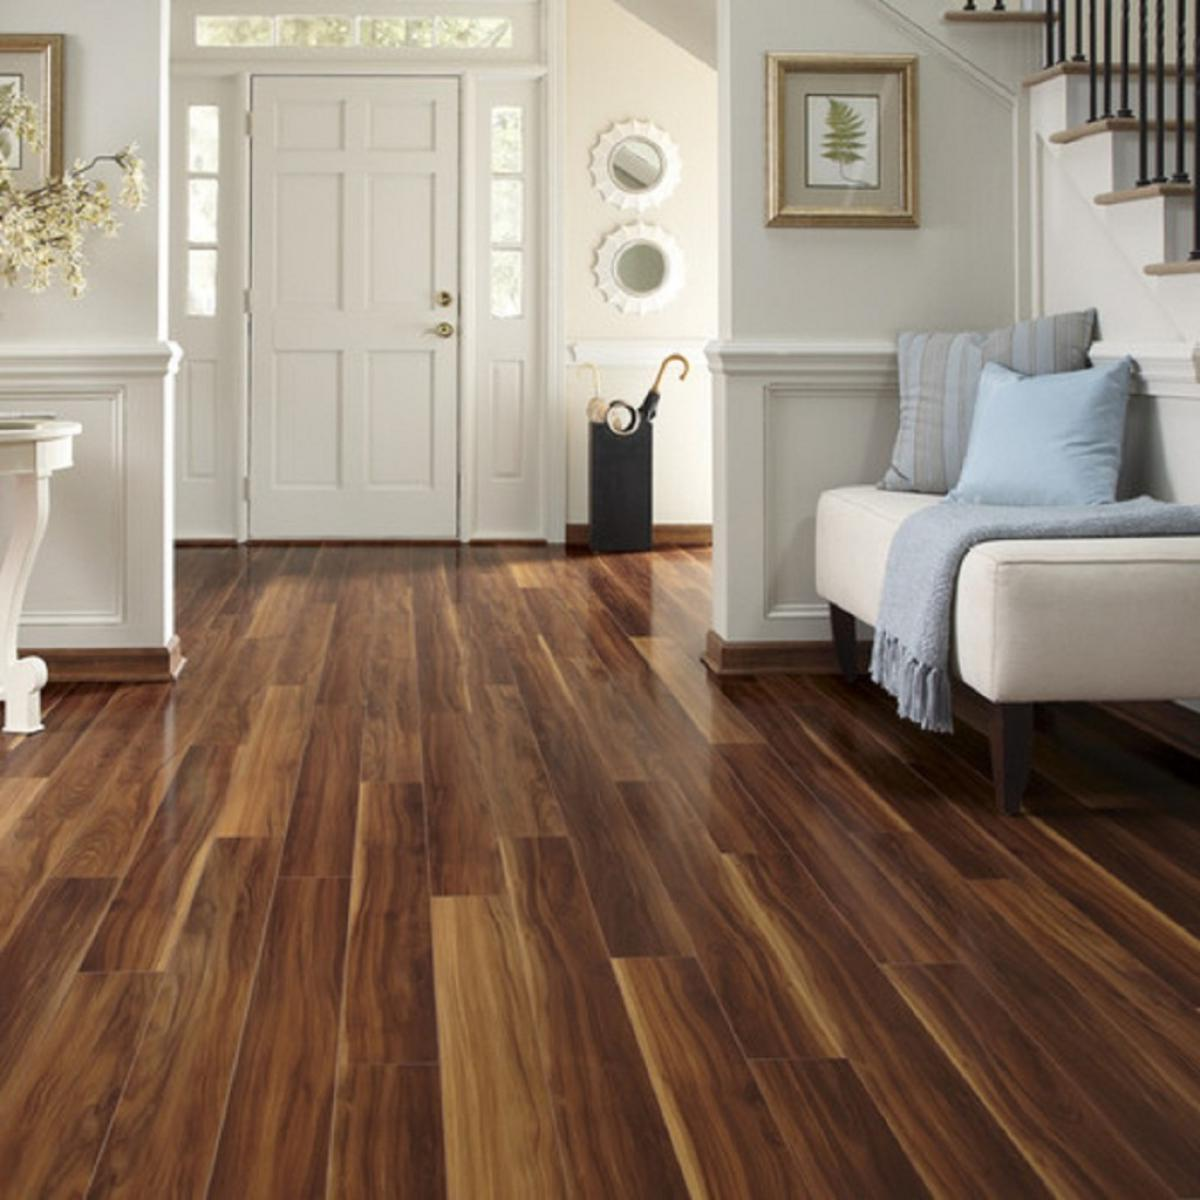 Modern Hardwood Floors Design | Royals Courage